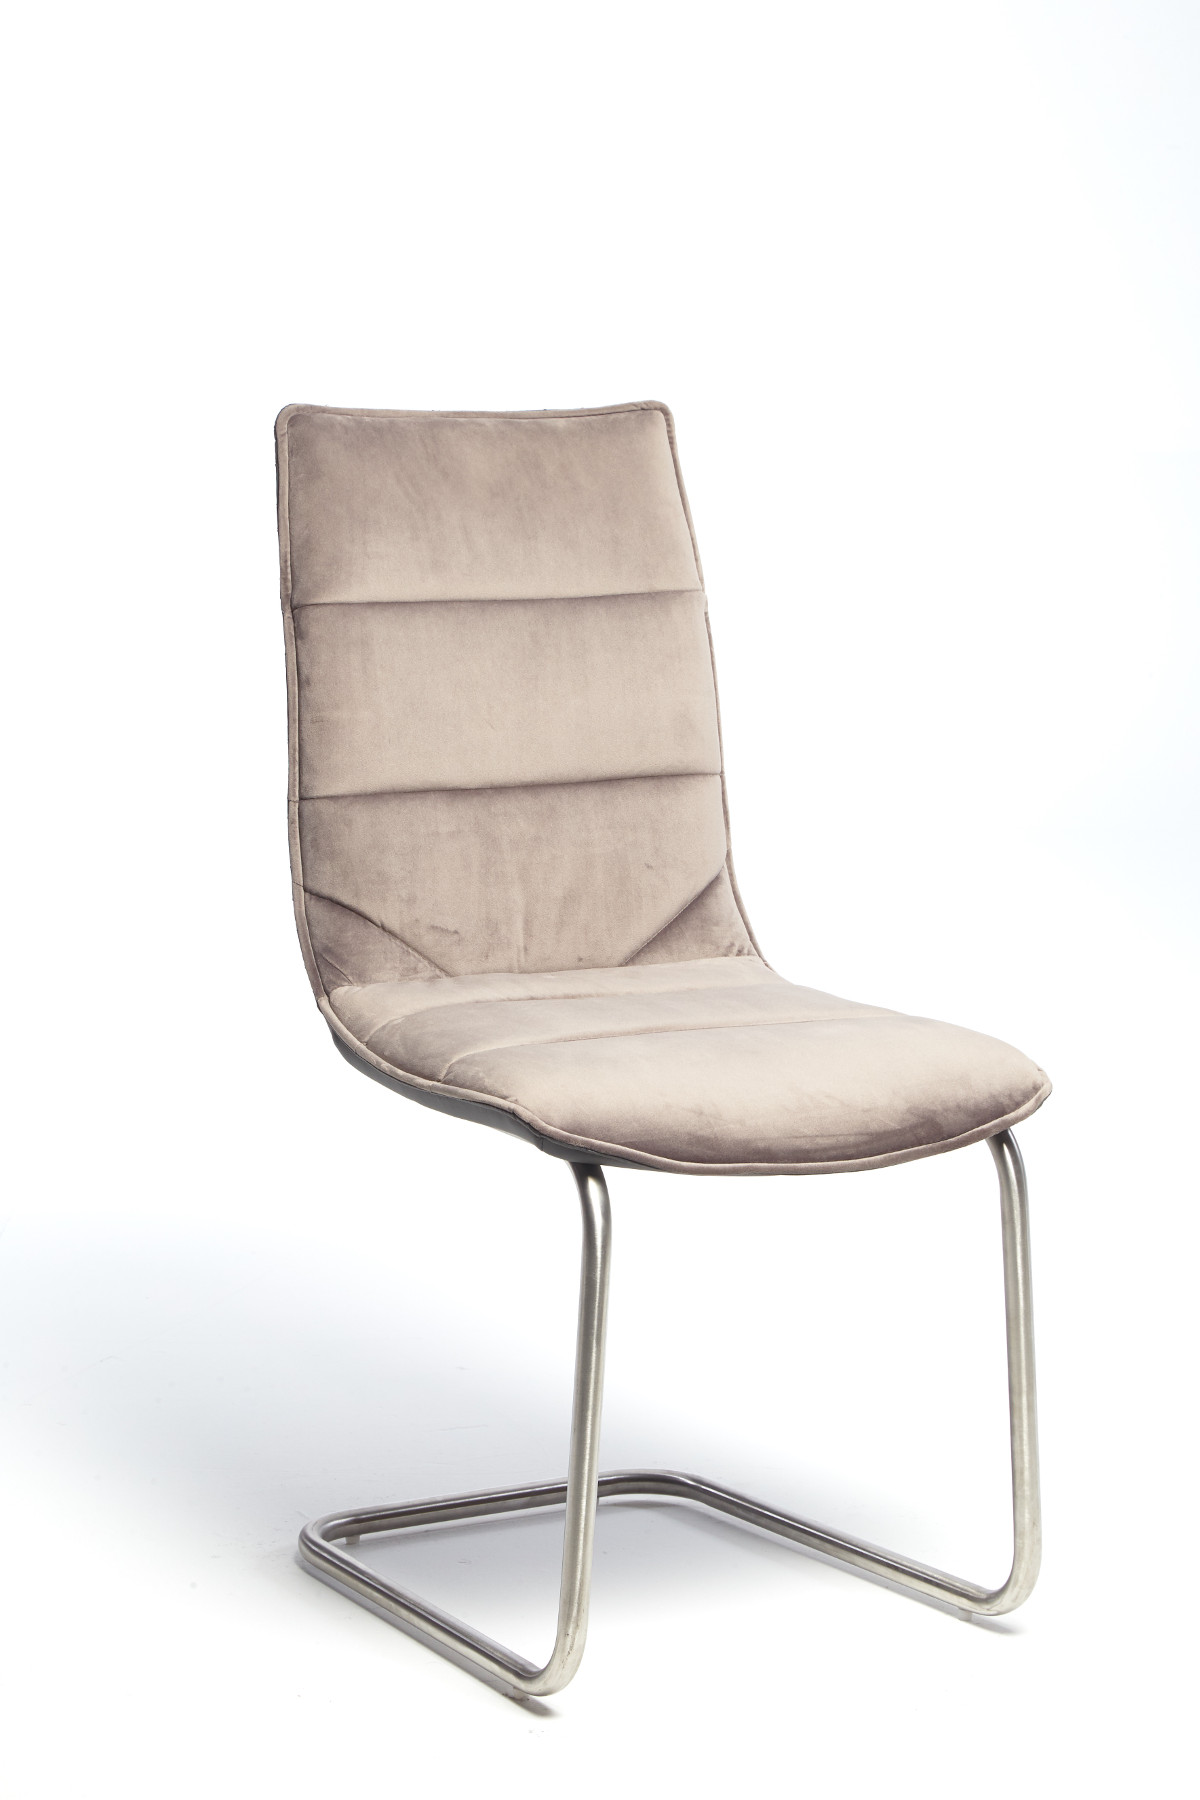 Sara Grey Dining Chair